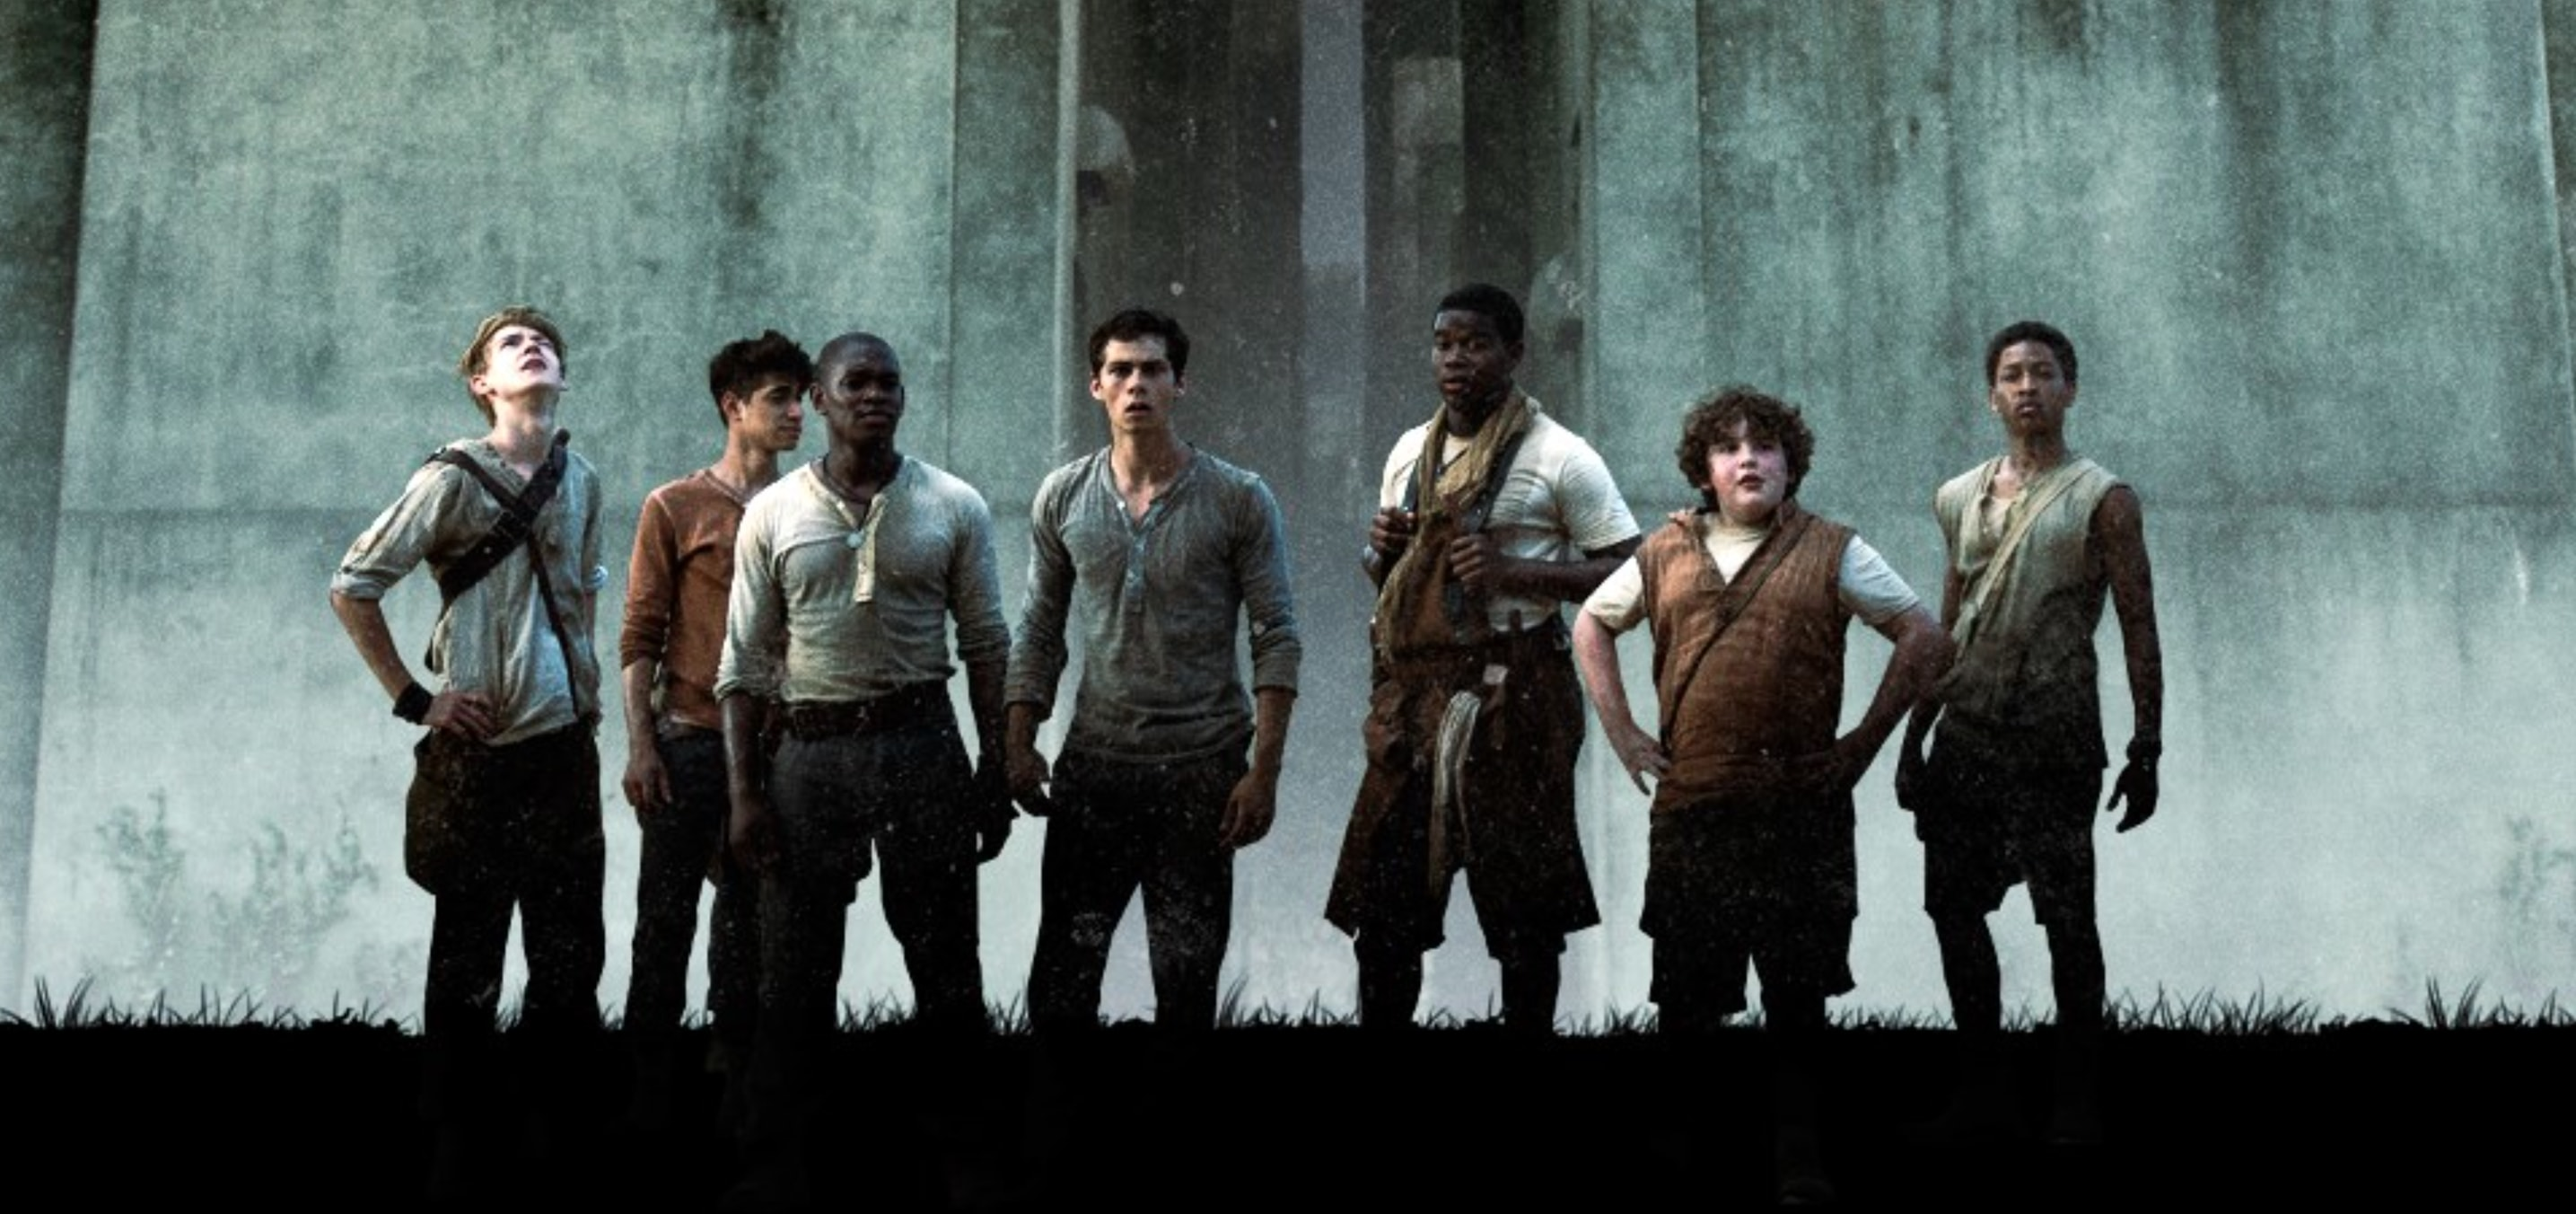 mazerunner characterization In the book, the maze runner, there were many heroes but thomas was the most heroic character even though thomas was a new member of the glade, he demonstrated his courage, his self- sacrifice for the good of others, and leadership.